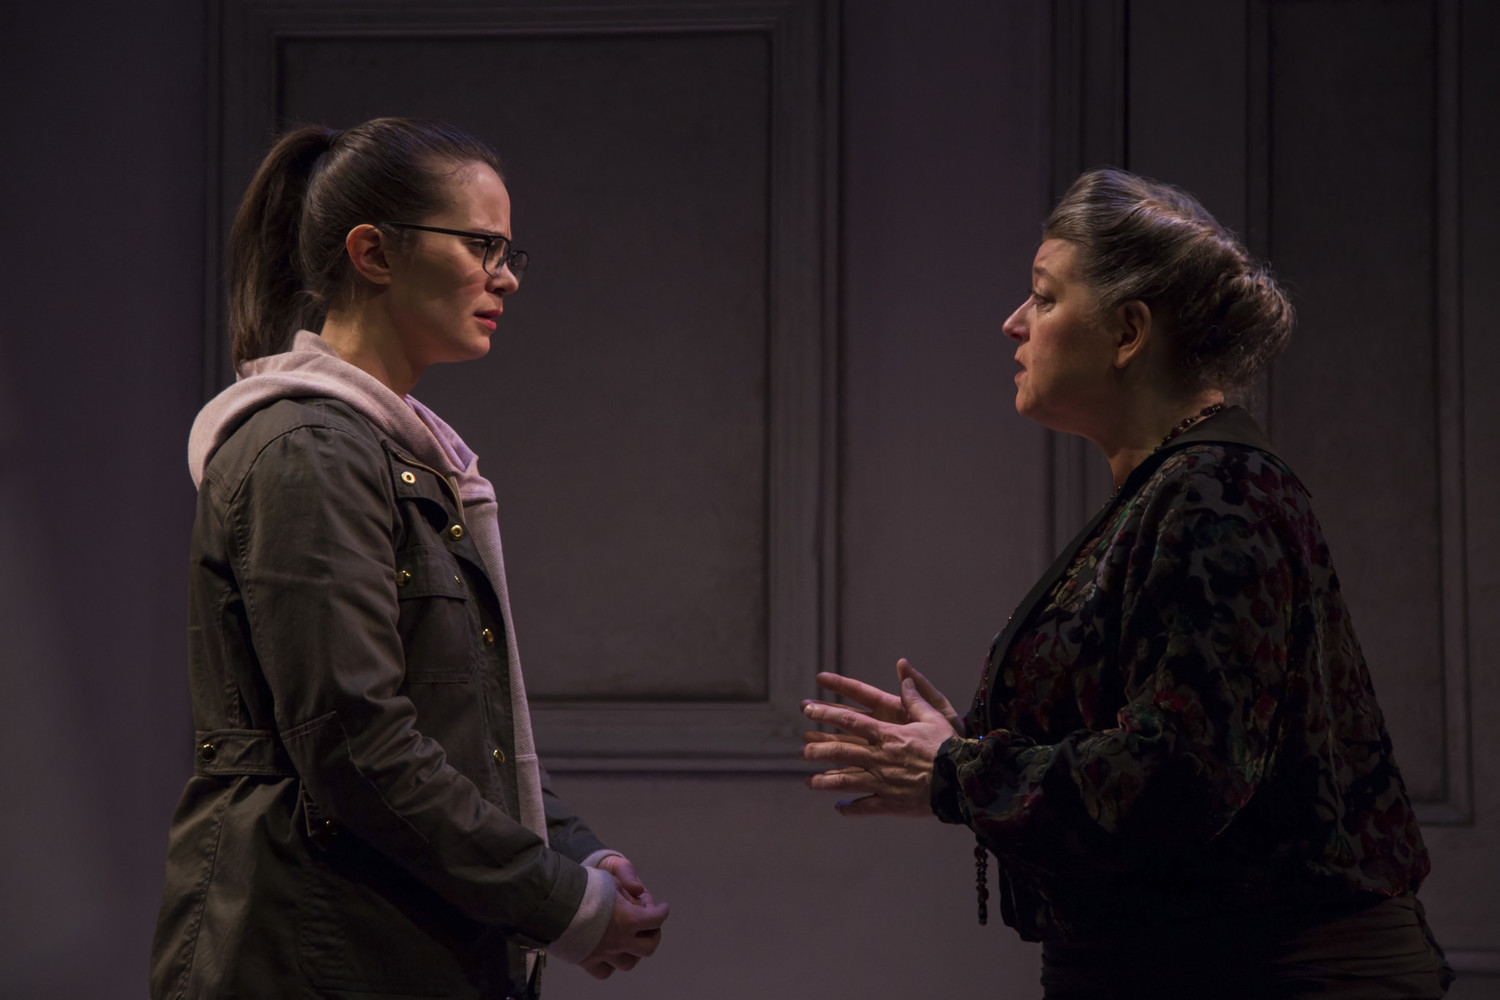 BWW Review: A Community's Accomplishment and the Homosexual Gaze: ALL SHE MUST POSSESS at REP Stage